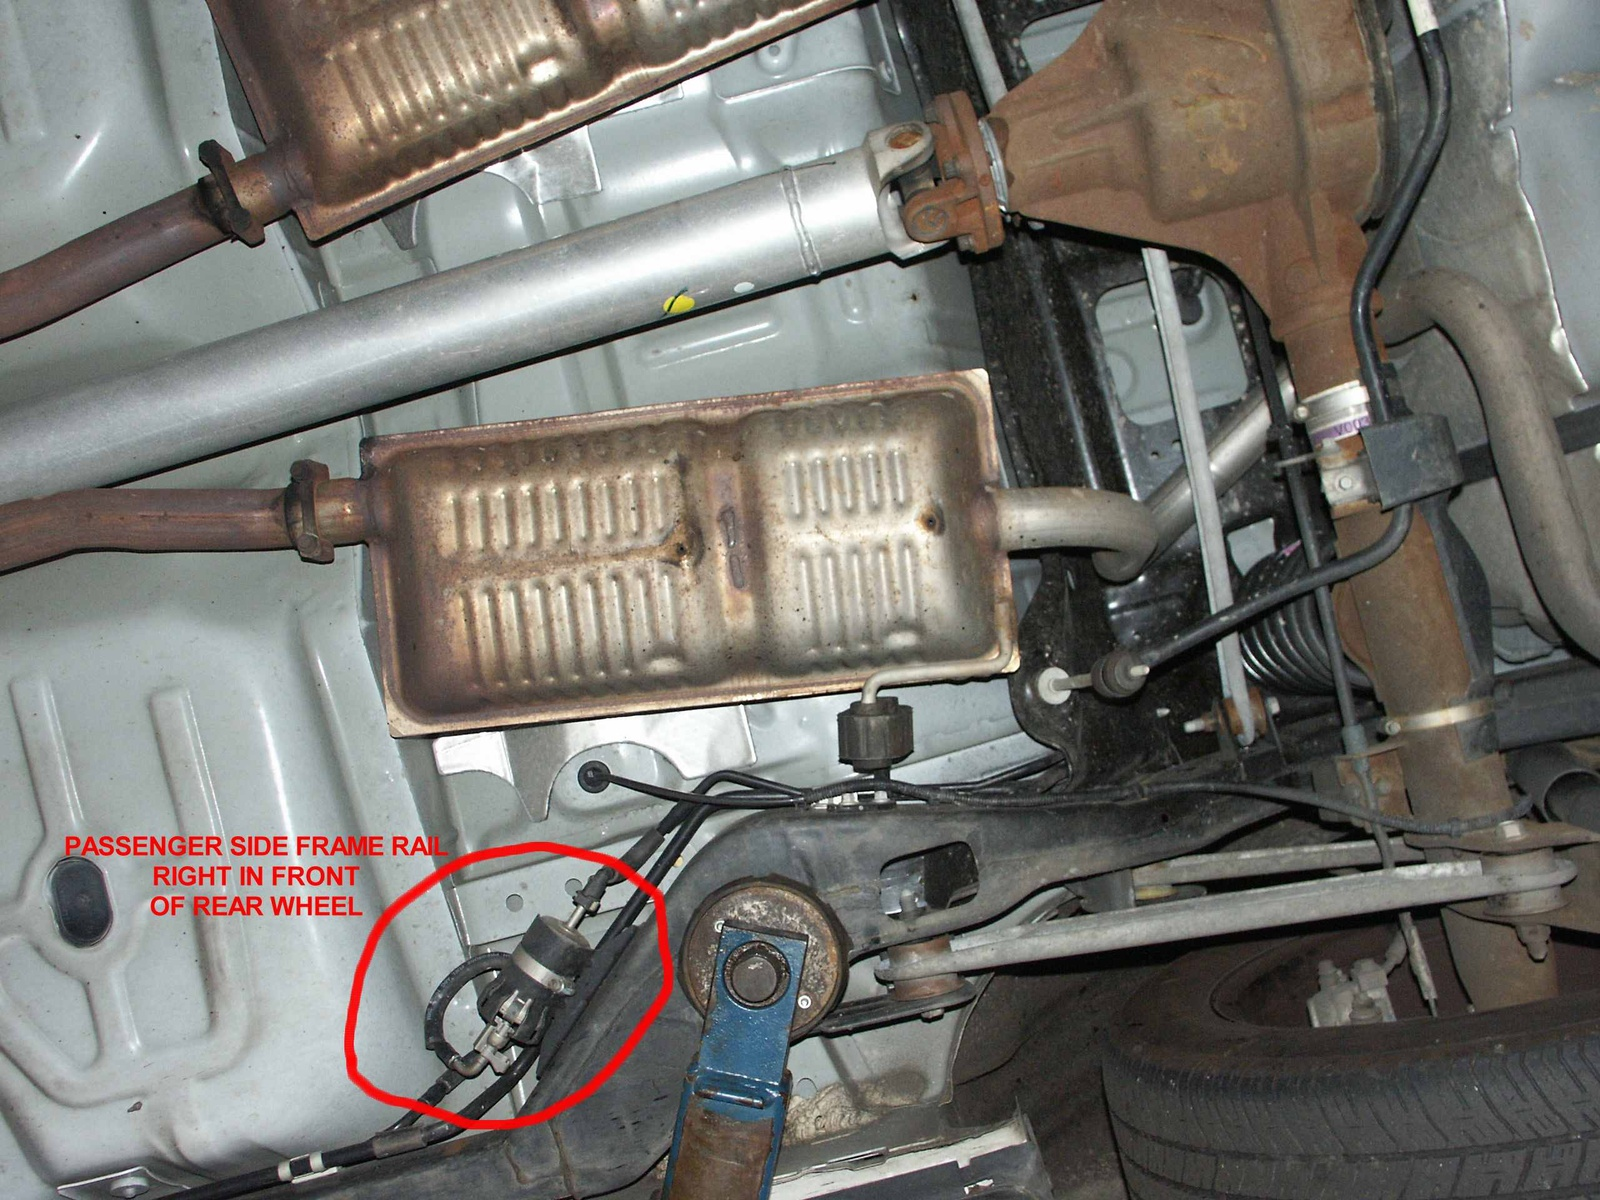 hight resolution of 1988 ford ranger fuel filter replacement get free image about wiring diagram as well ford focus fuel filter location on 2004 chevy malibu